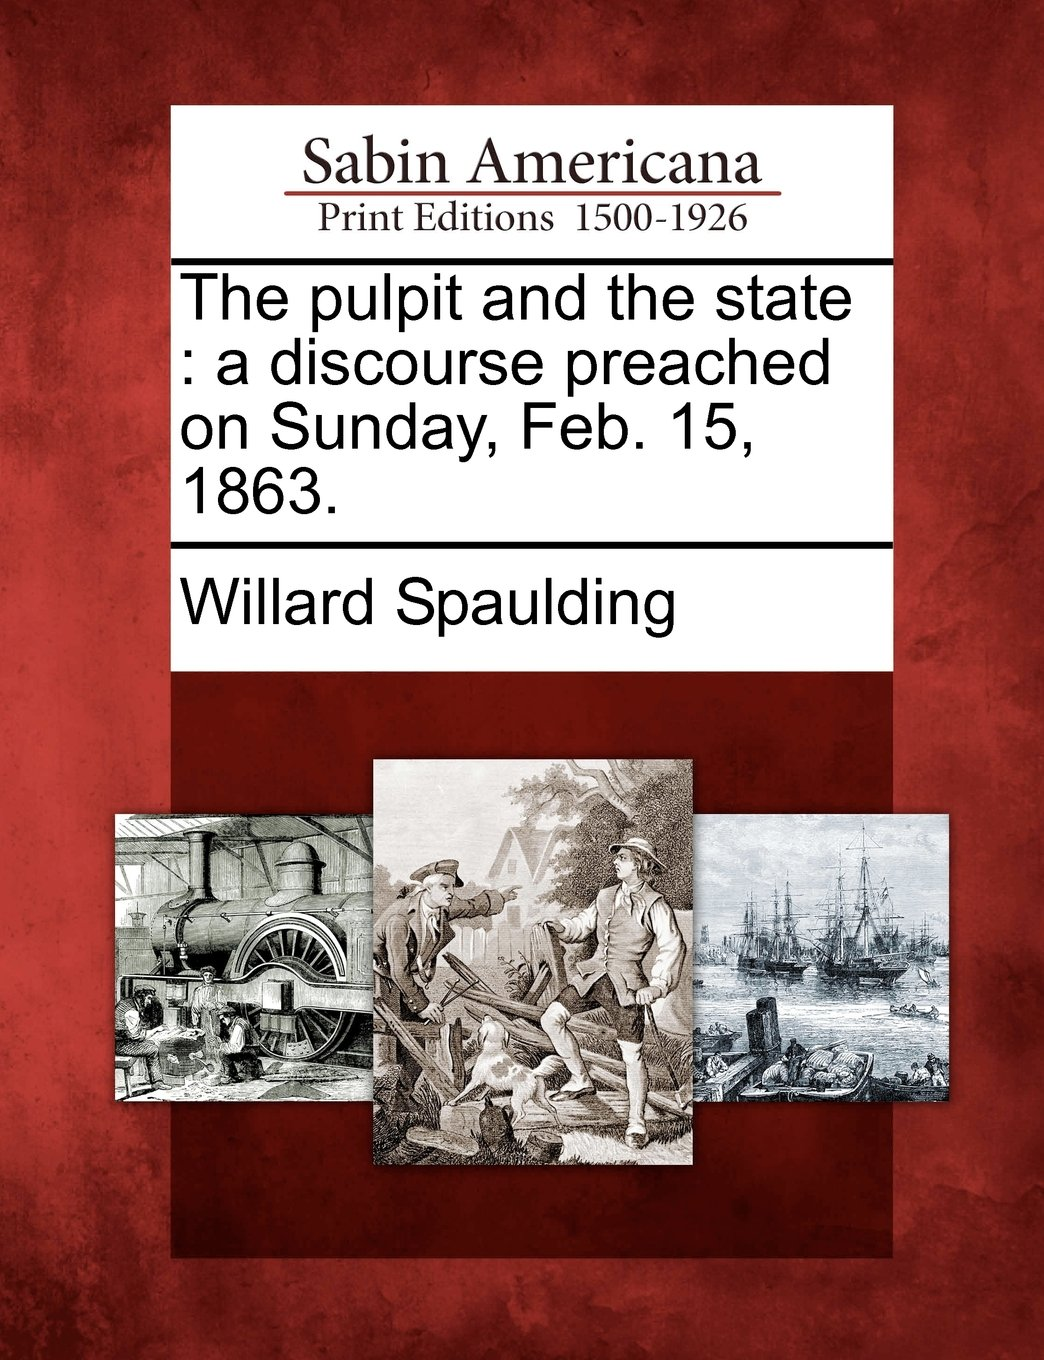 The pulpit and the state: a discourse preached on Sunday, Feb. 15, 1863. PDF